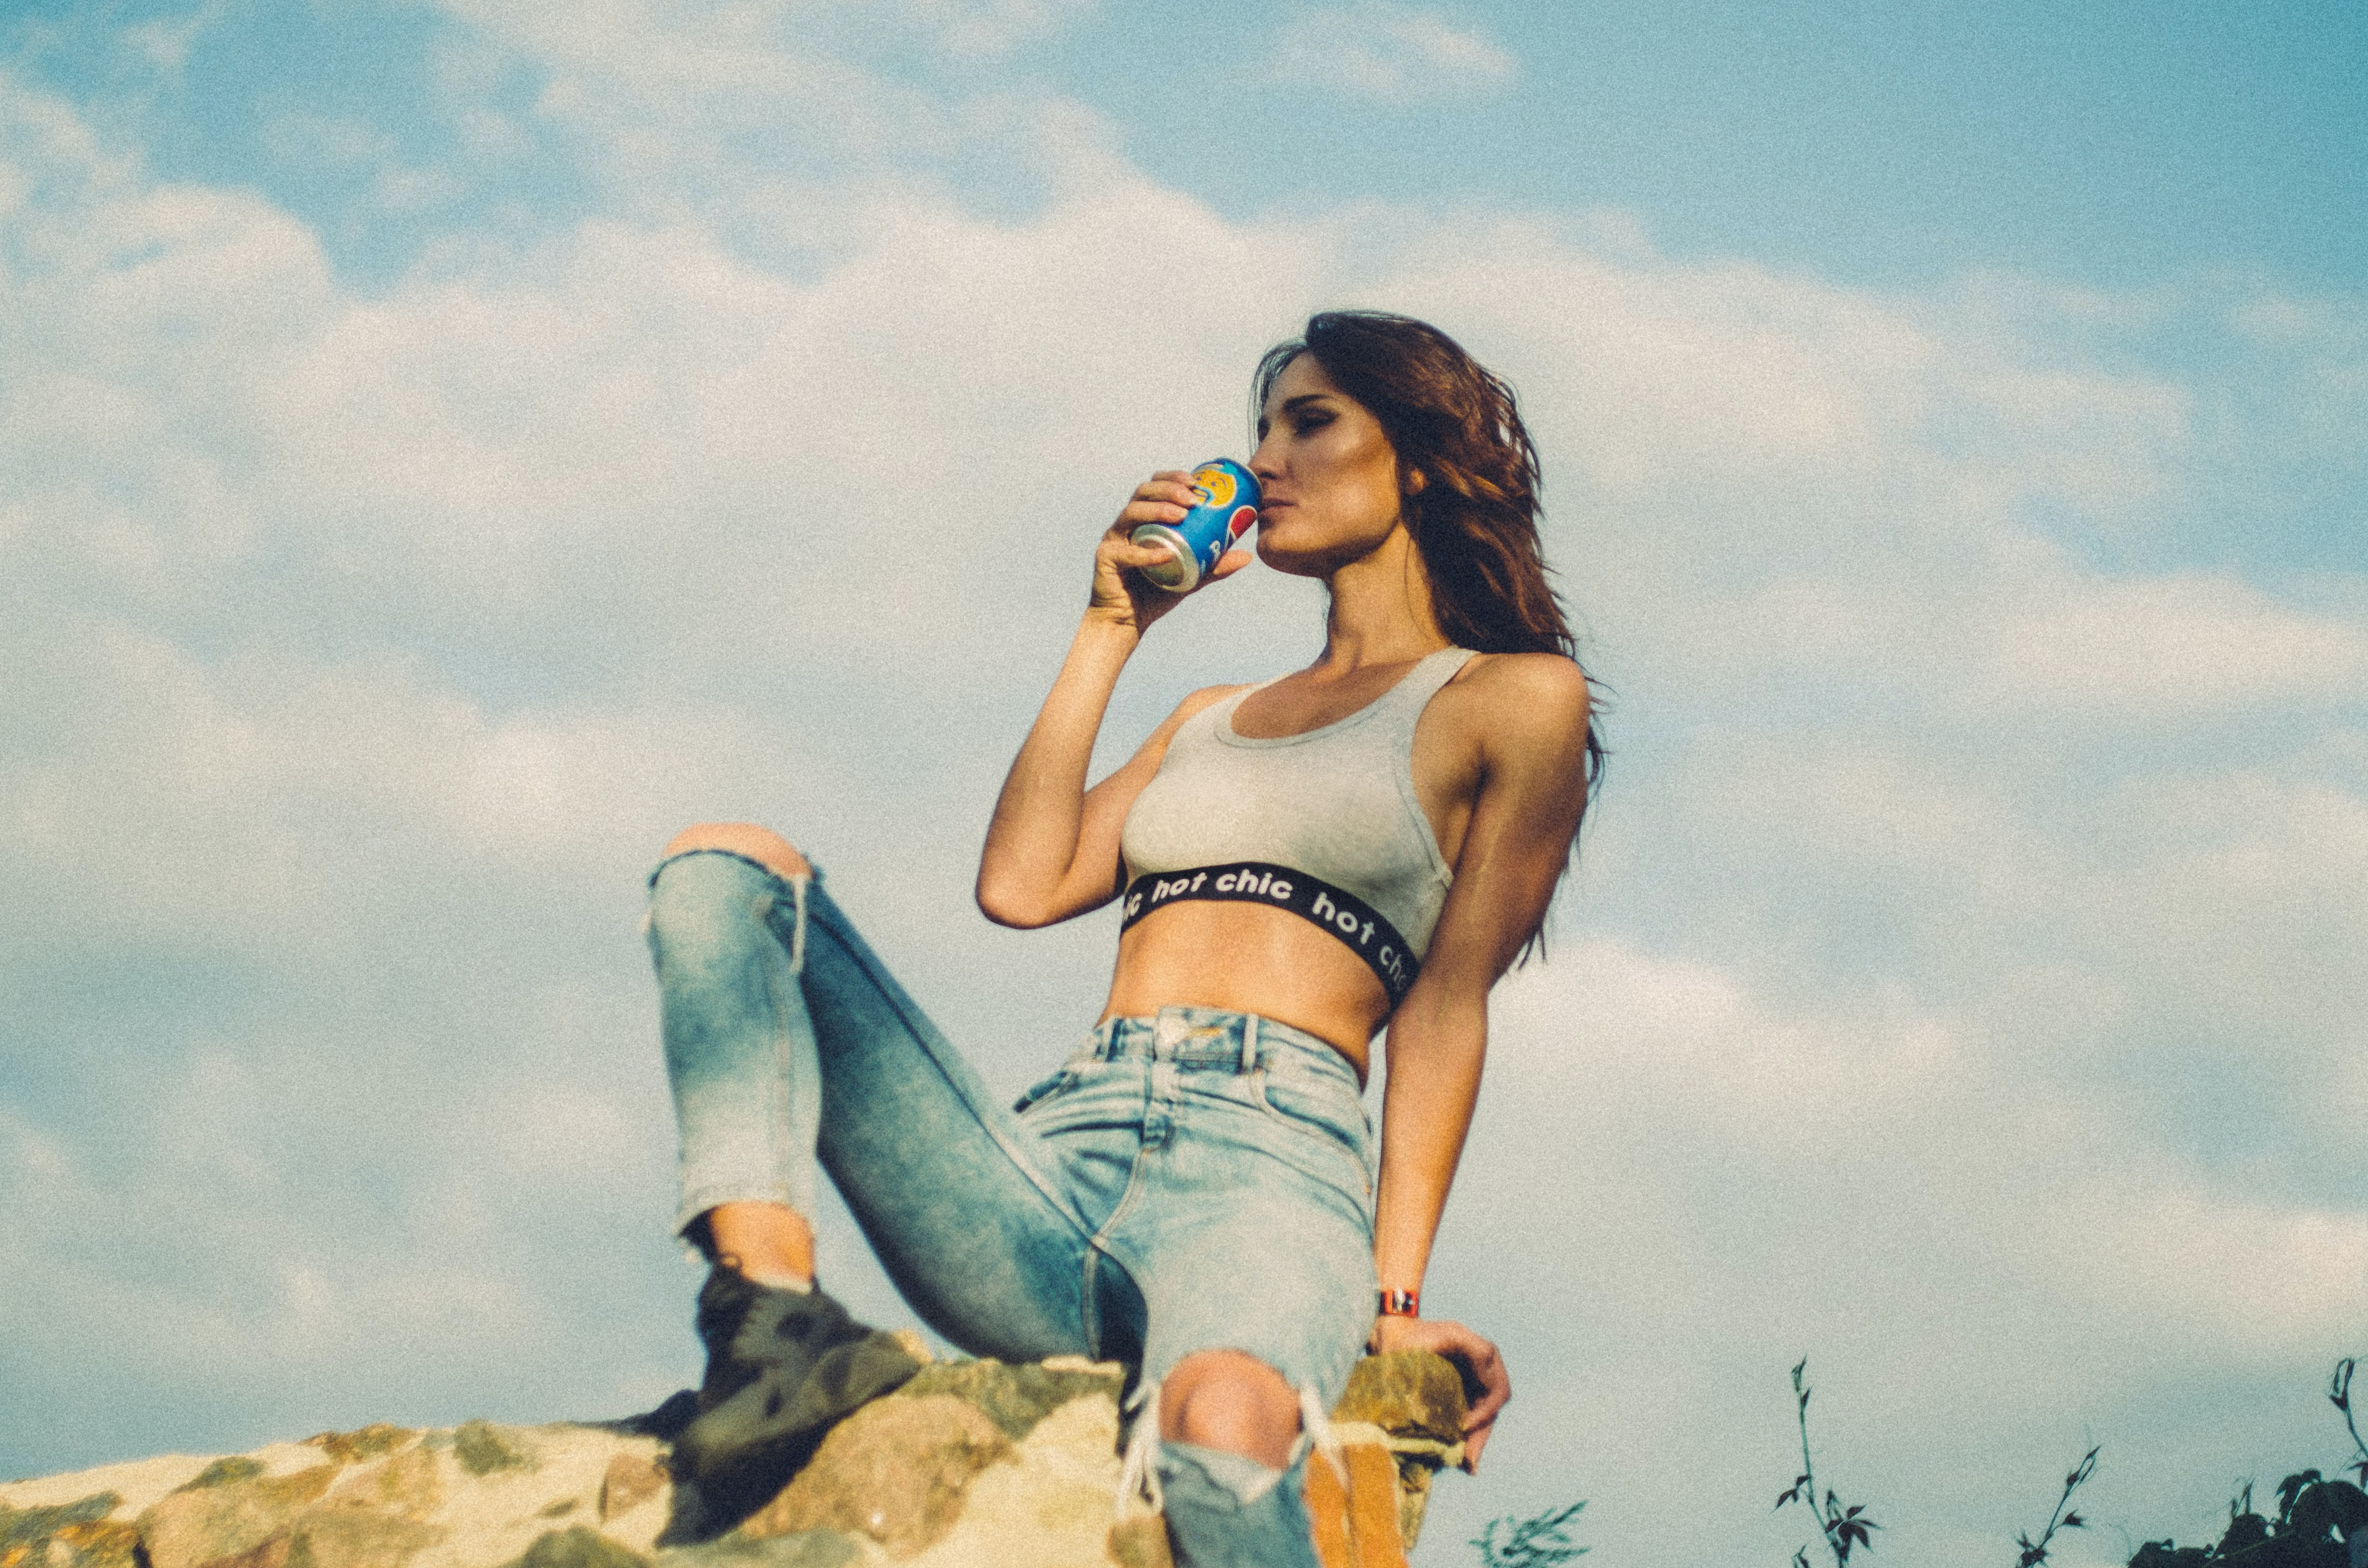 woman sitting on rocky hill drinking soda can during daytime